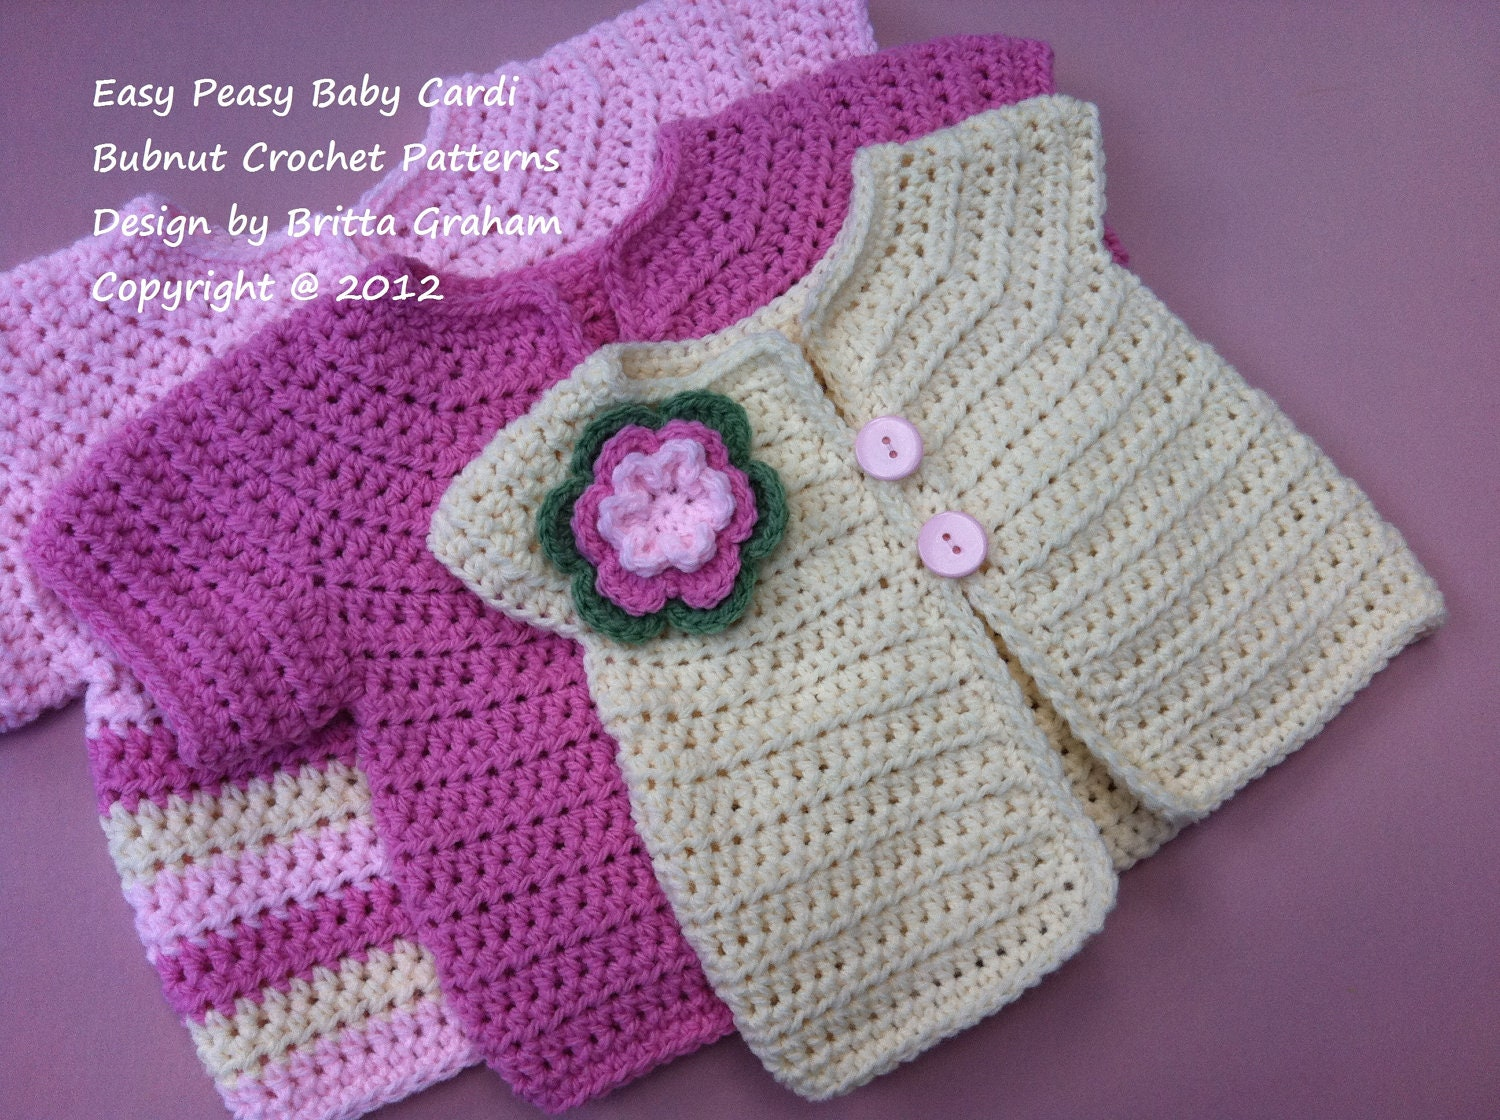 Free Crochet Pattern For Easy Baby Sweater : Crochet Baby Sweater Patterns Easy Free www.galleryhip ...